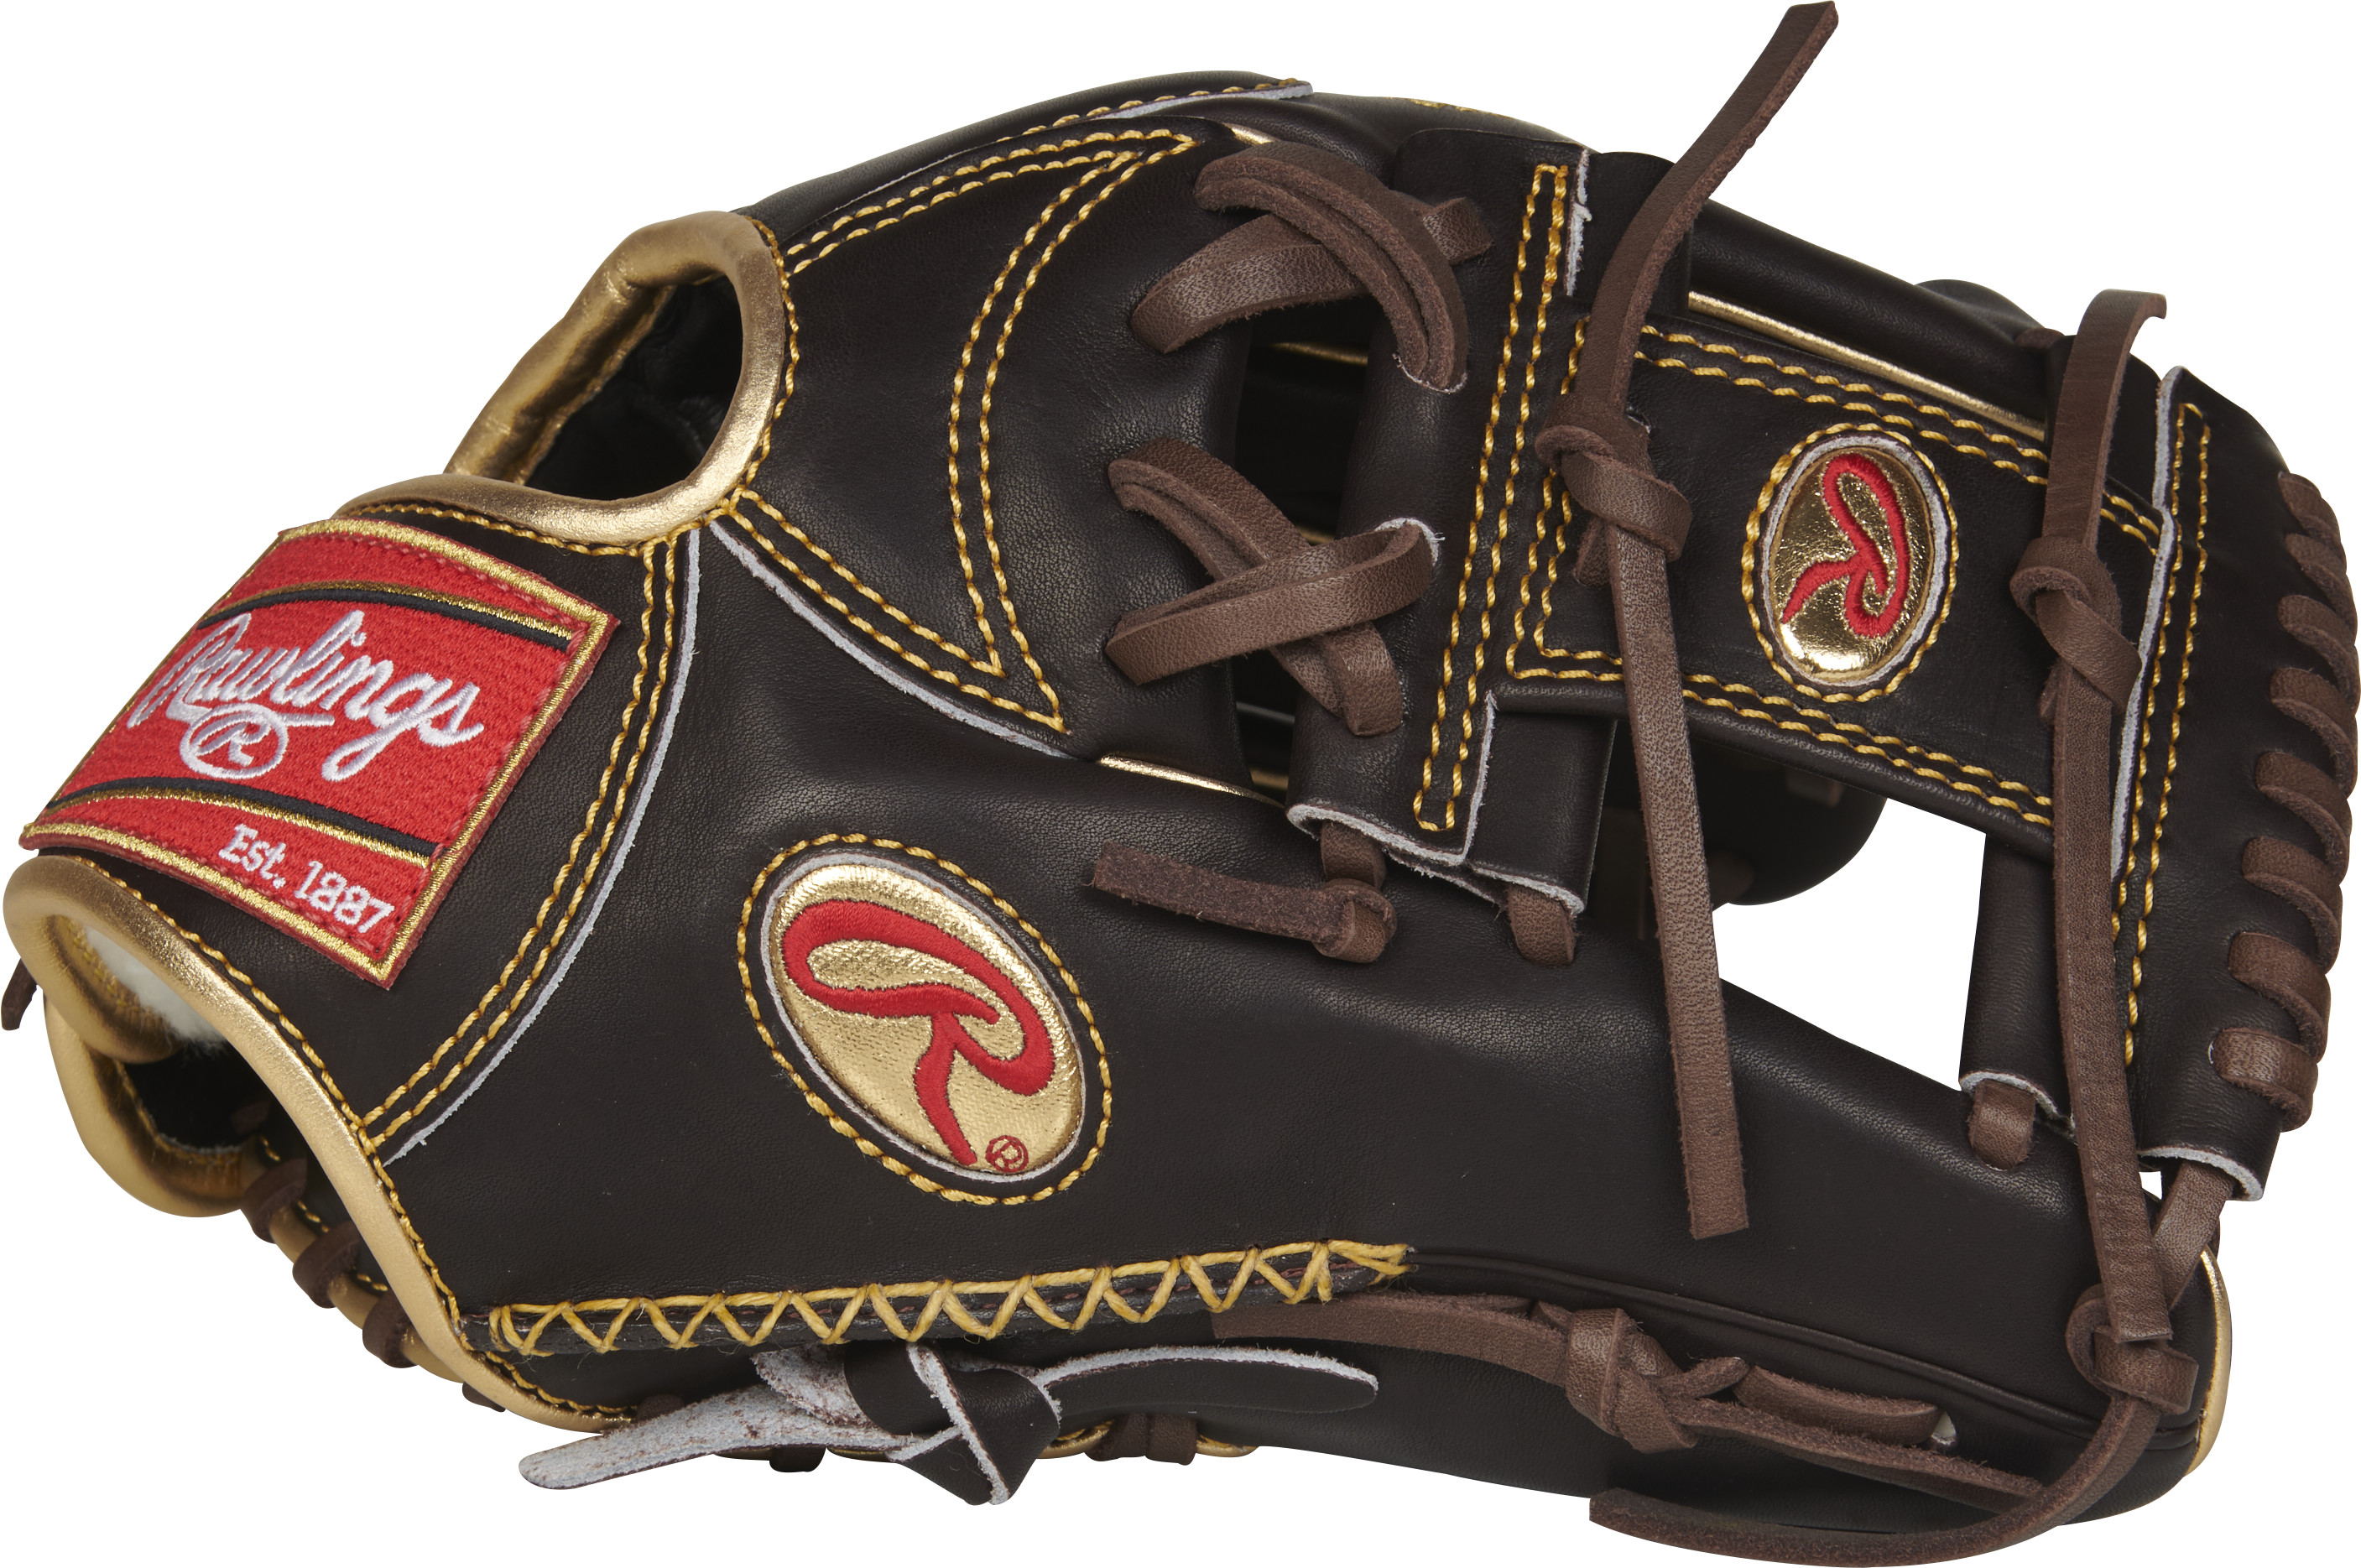 http://www.bestbatdeals.com/images/gloves/rawlings/RGGNP5-2MO-3.jpg